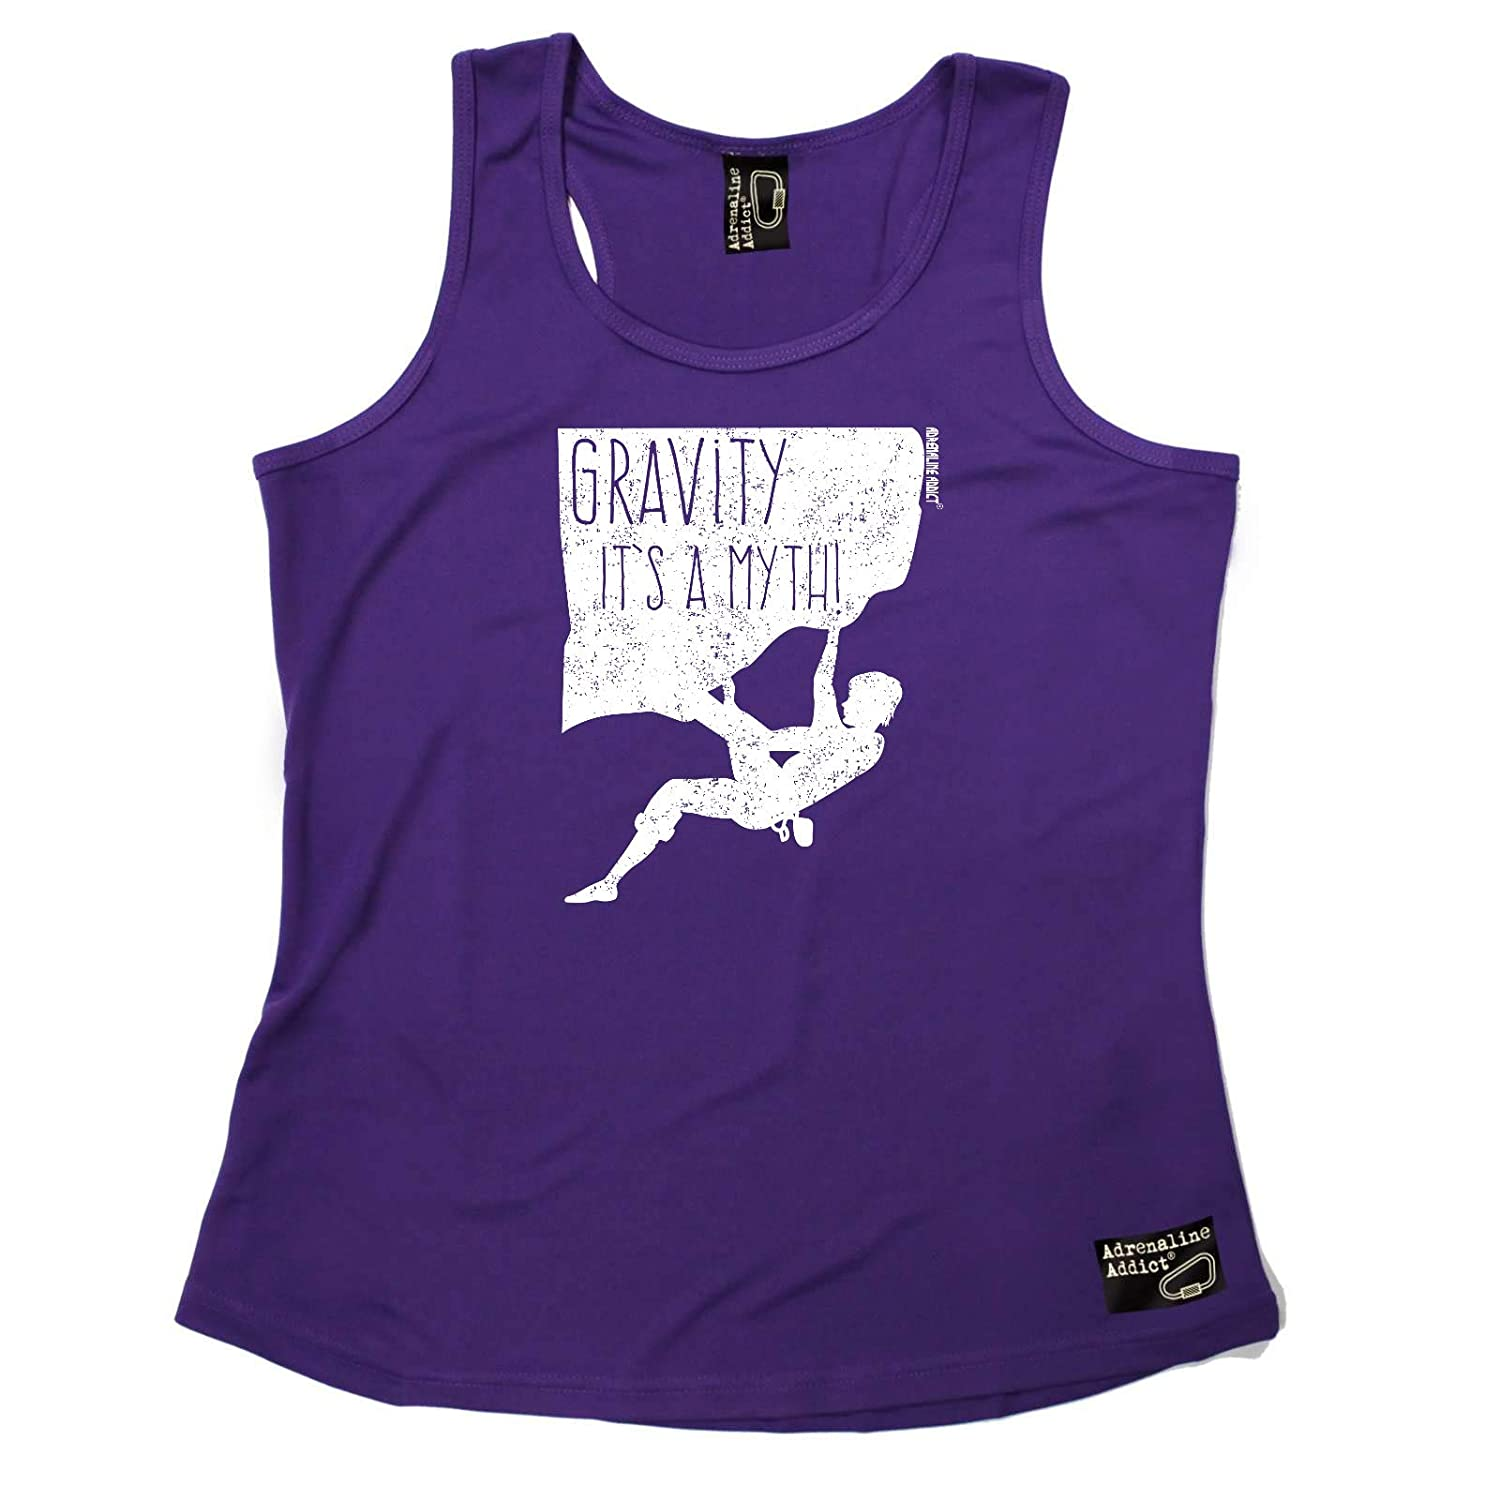 Adrenaline Addict Womens Rock Climbing Vest - Gravity is A Myth - Dry Fit Performance Vest Singlet